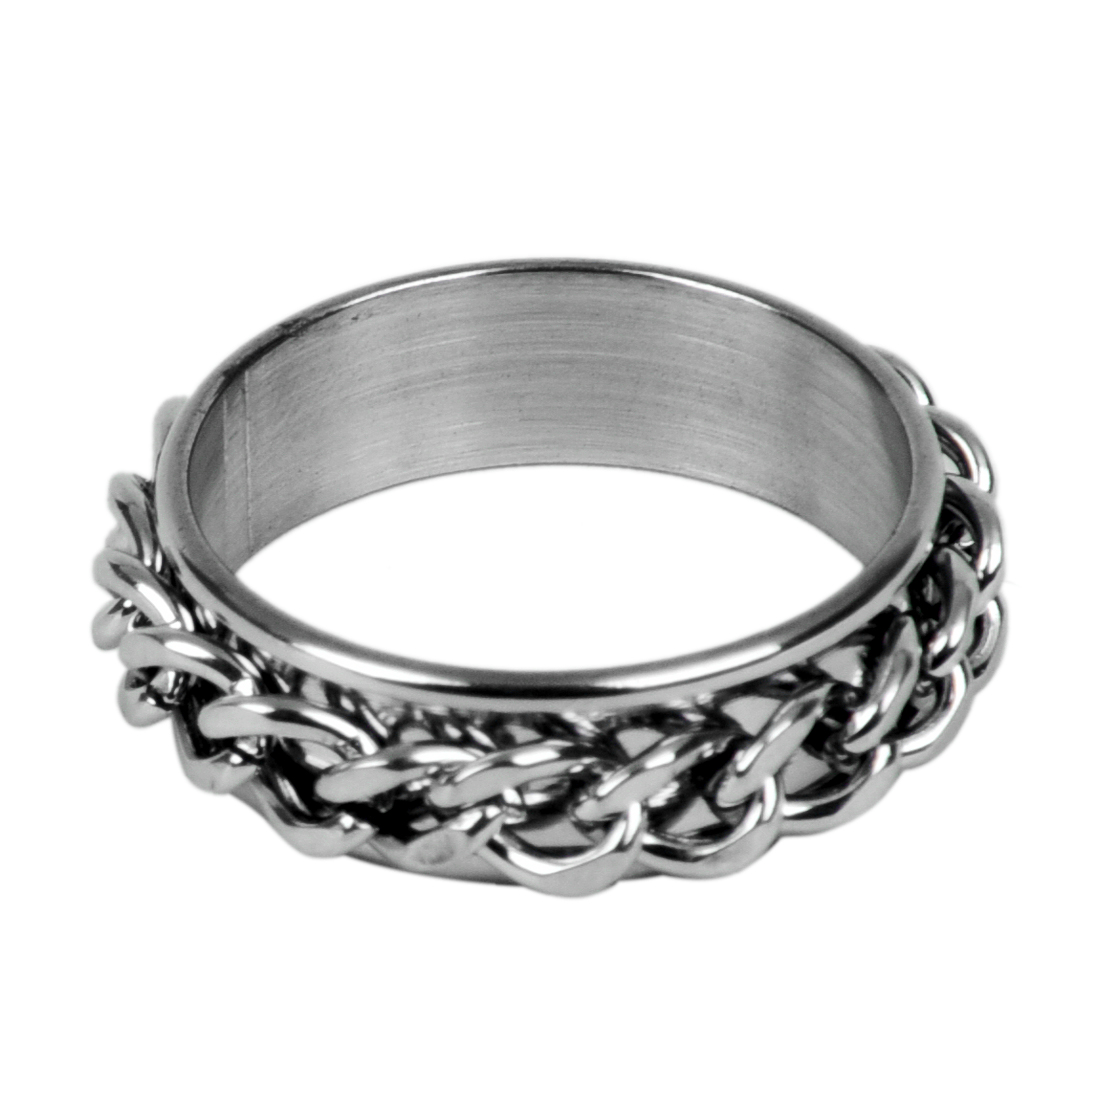 Mens Stainless Steel Curb Chain Band Ring UK Size: T 1/2 - Silver